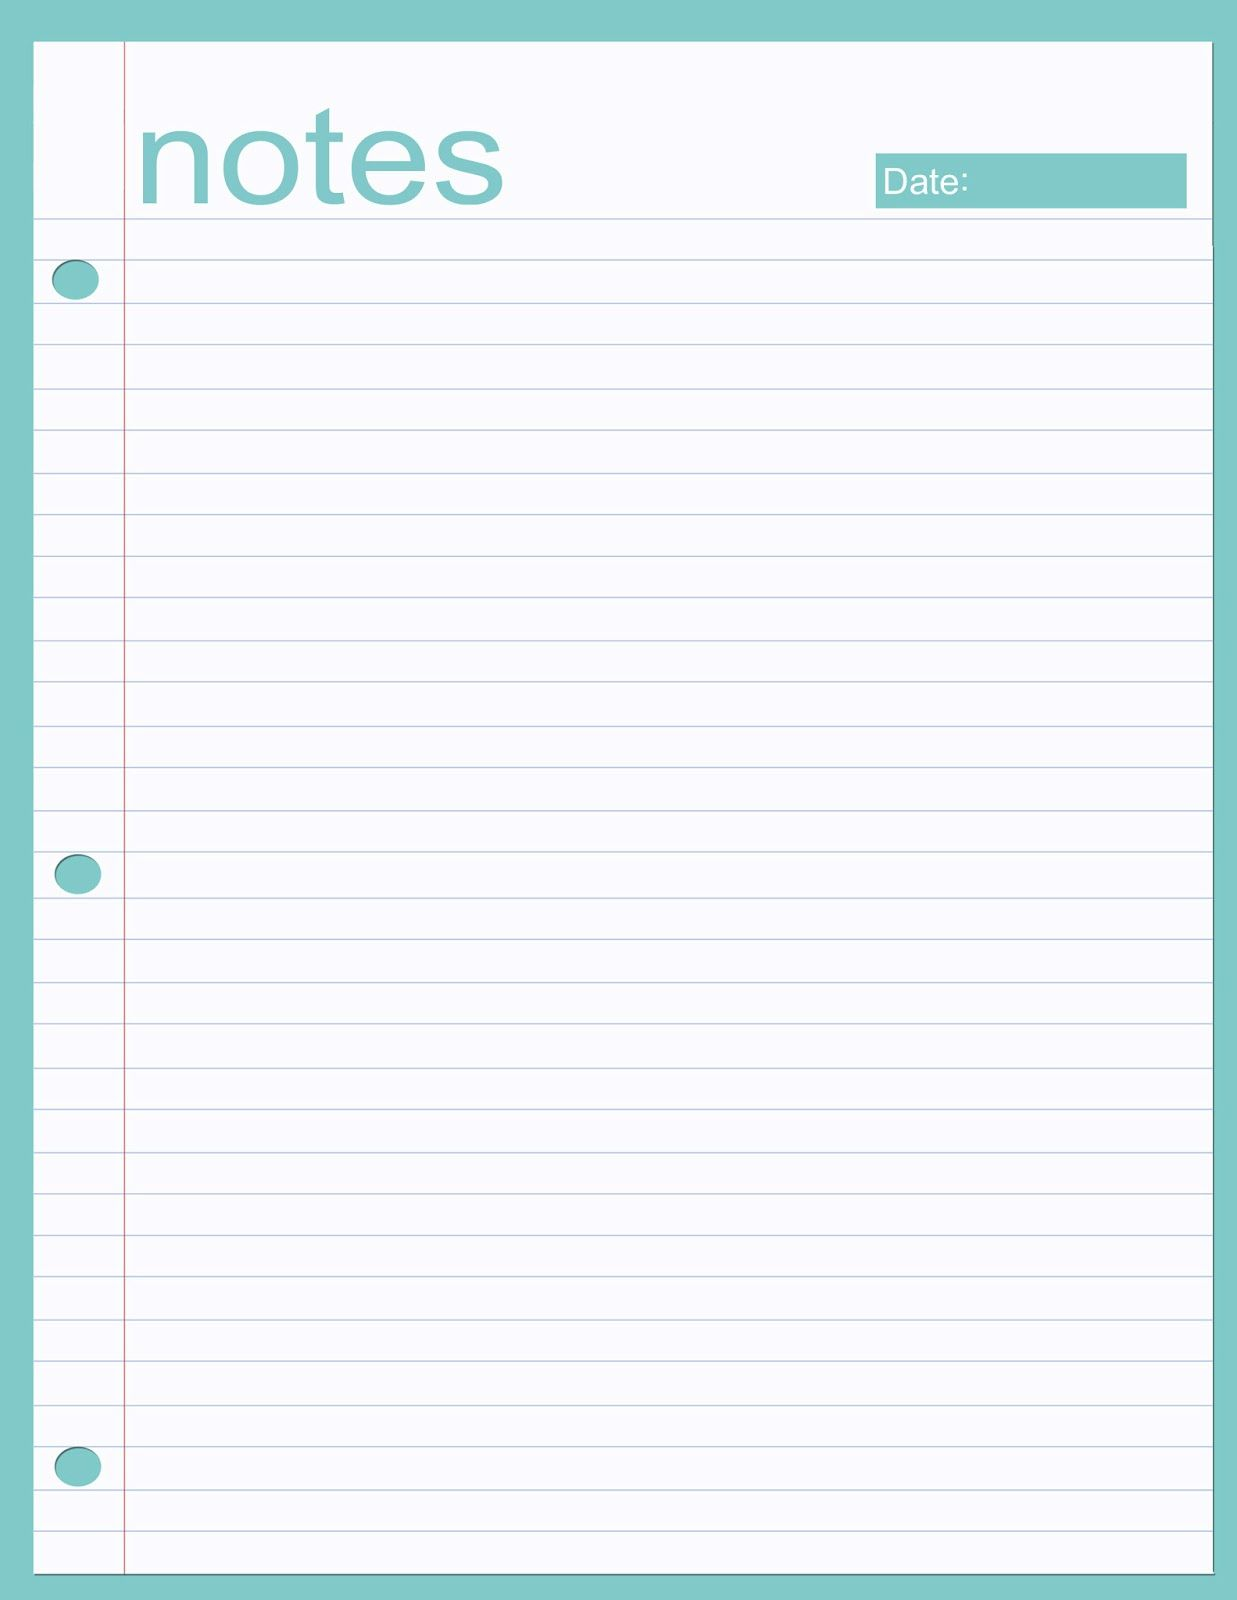 photo relating to Notes Printable known as Printable notes website page Planners Planner internet pages, Printable